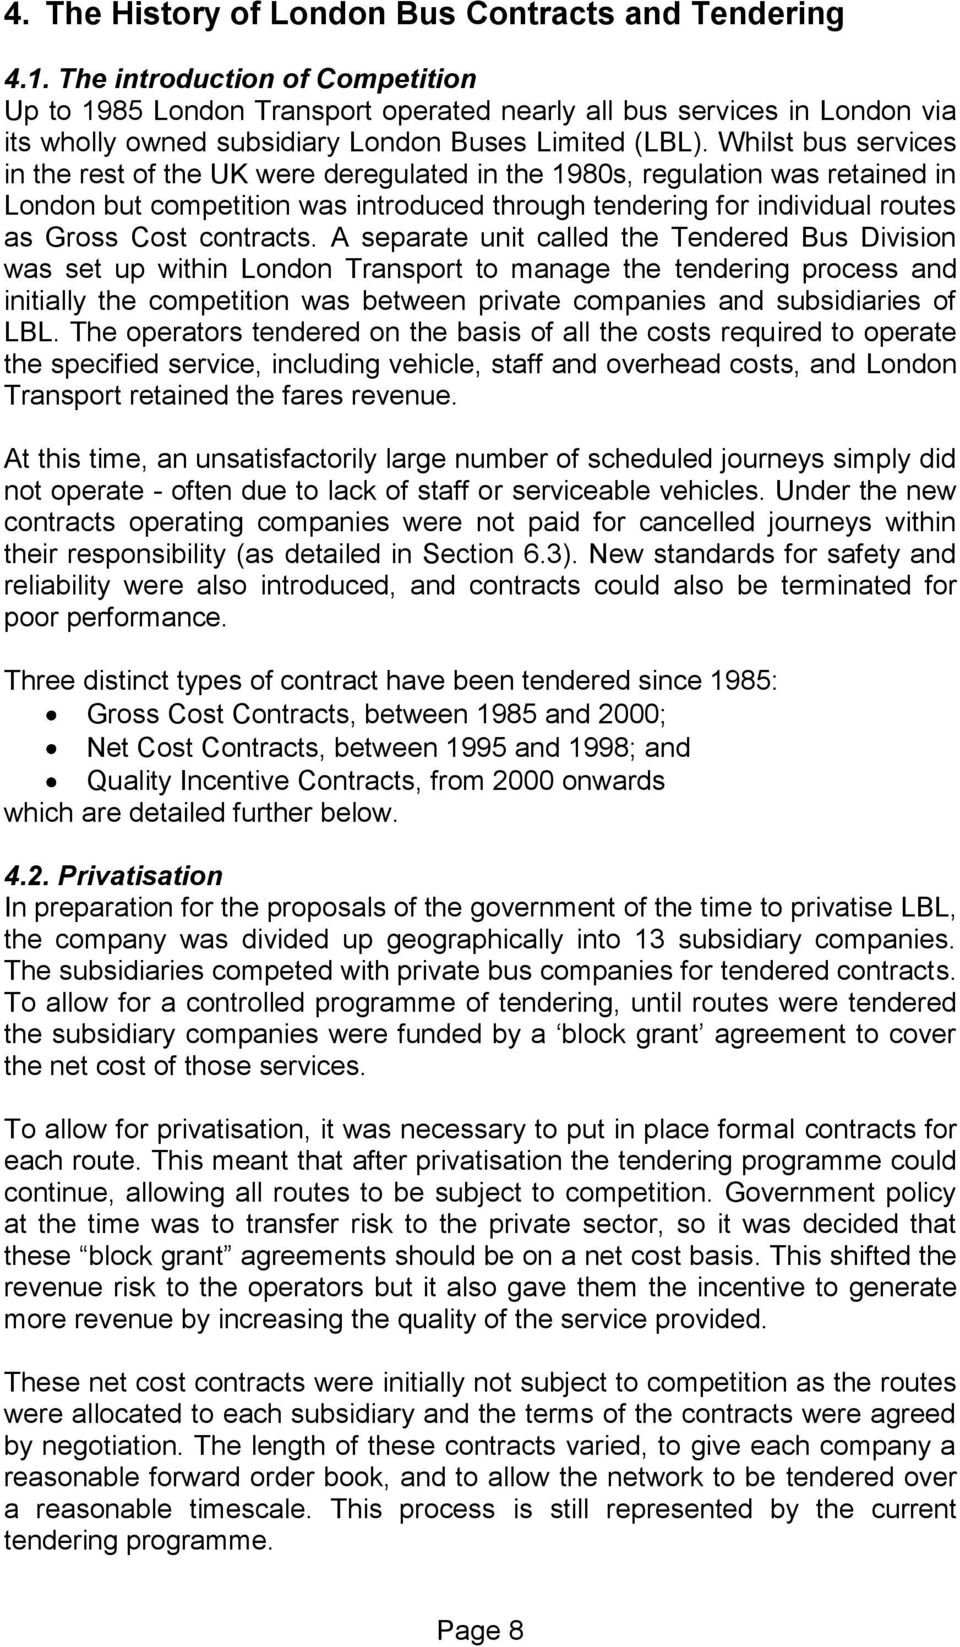 Whilst bus services in the rest of the UK were deregulated in the 1980s, regulation was retained in London but competition was introduced through tendering for individual routes as Gross Cost